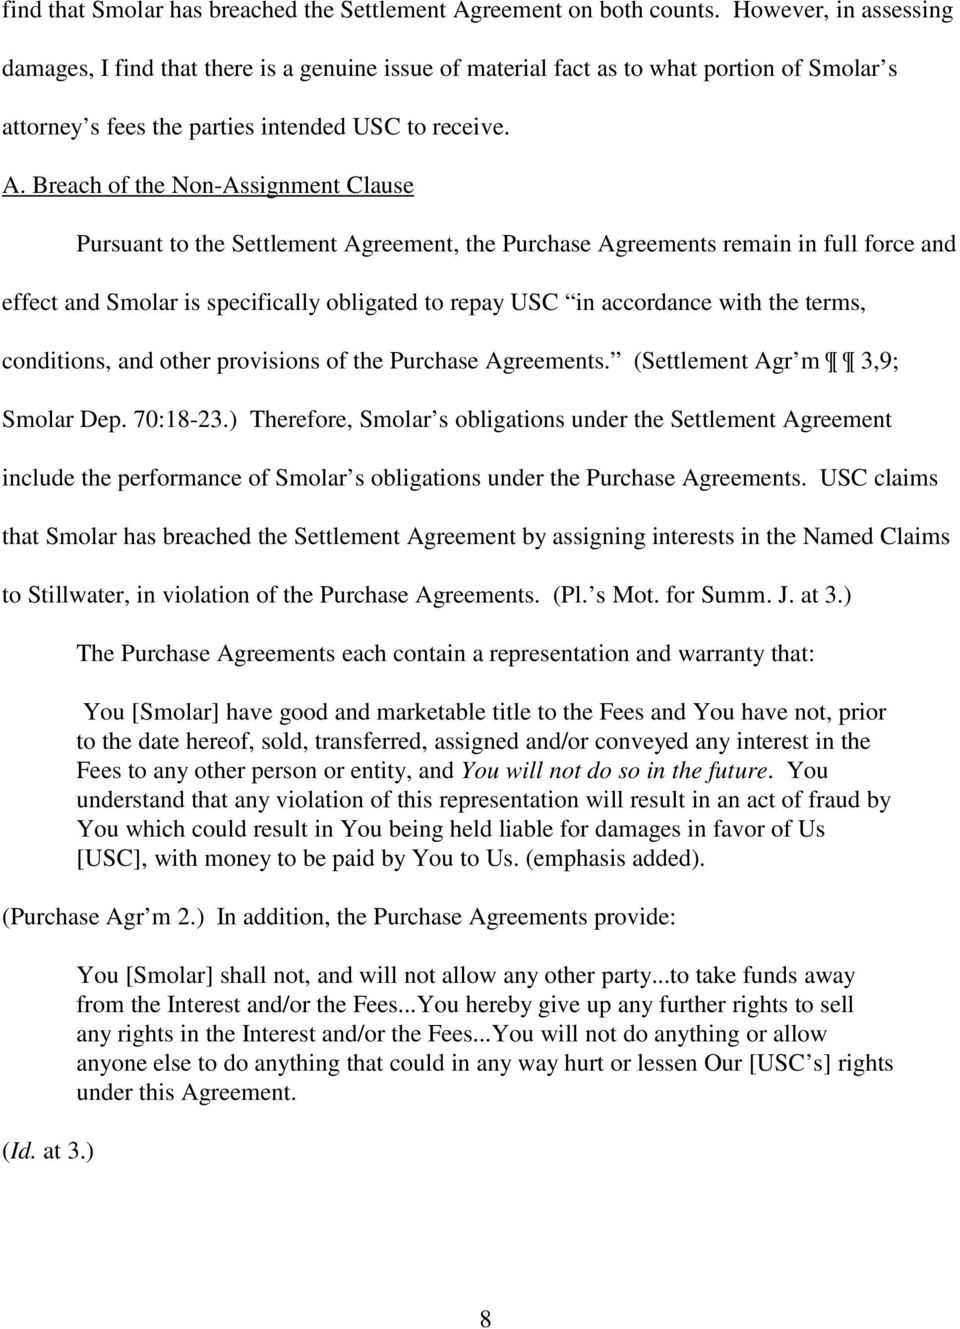 Breach of the Non-Assignment Clause Pursuant to the Settlement Agreement, the Purchase Agreements remain in full force and effect and Smolar is specifically obligated to repay USC in accordance with